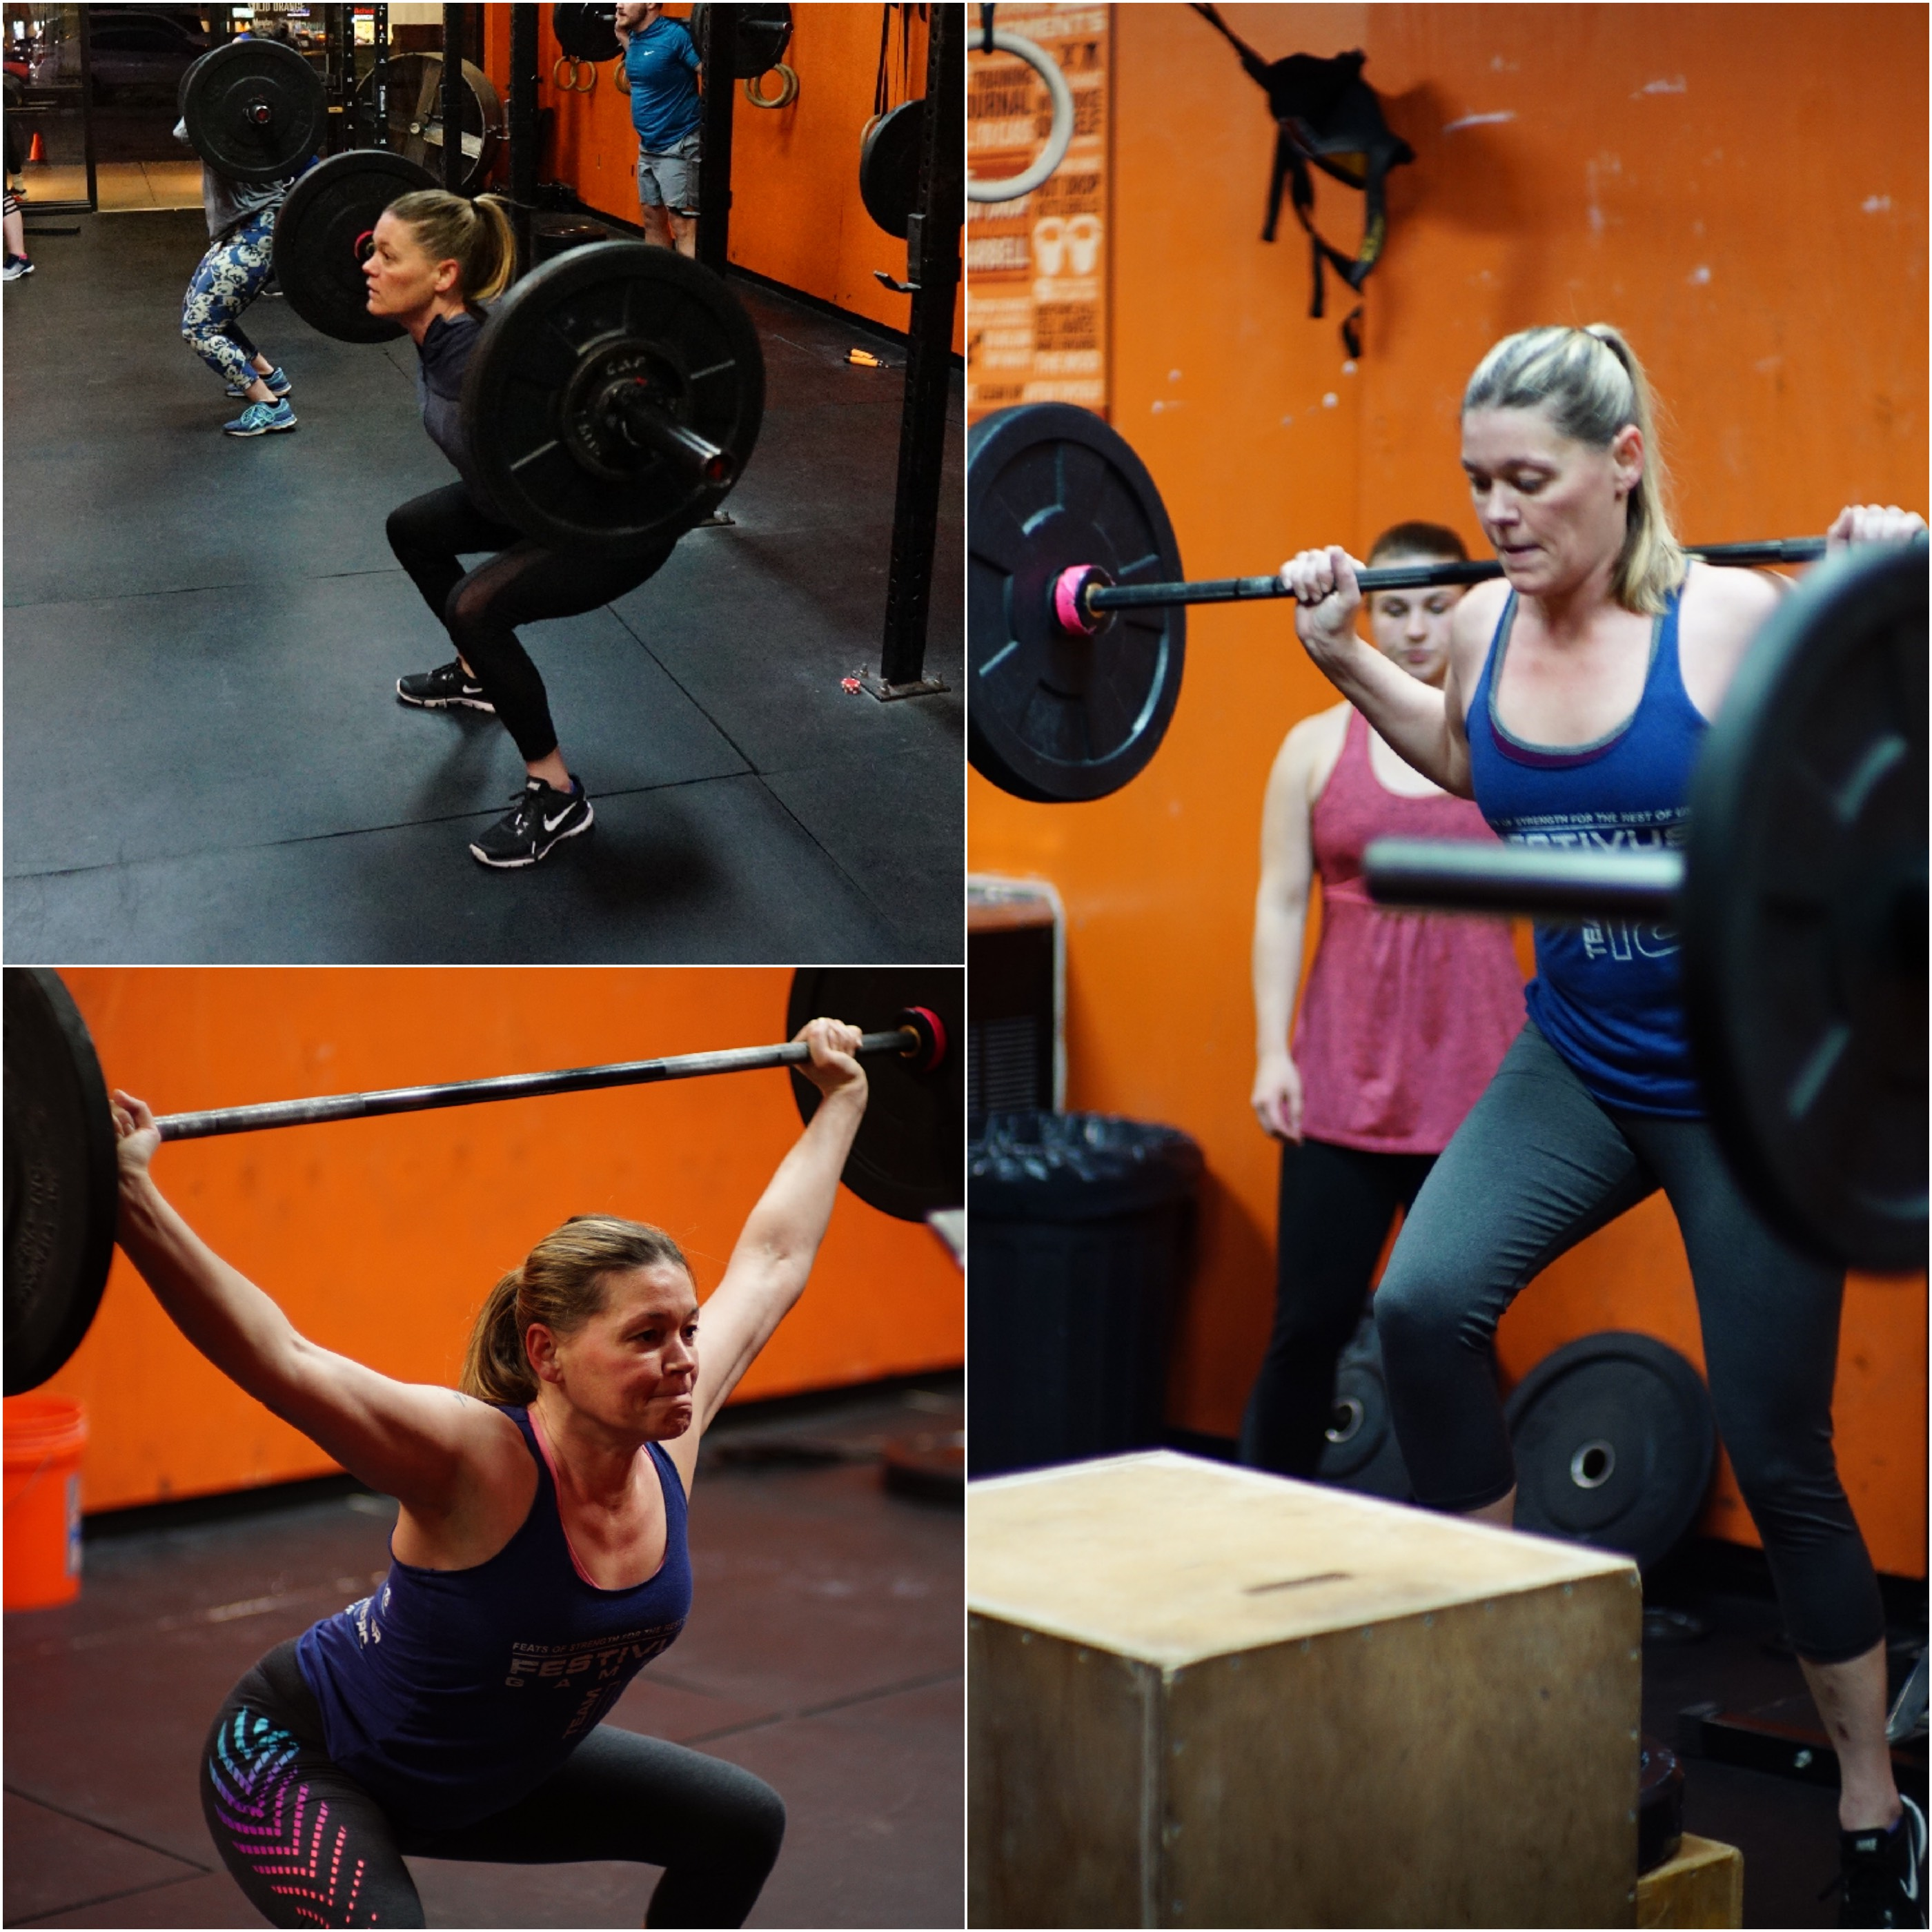 find gym classes near me bordeaux - Athlete of the Month: Amy Kight